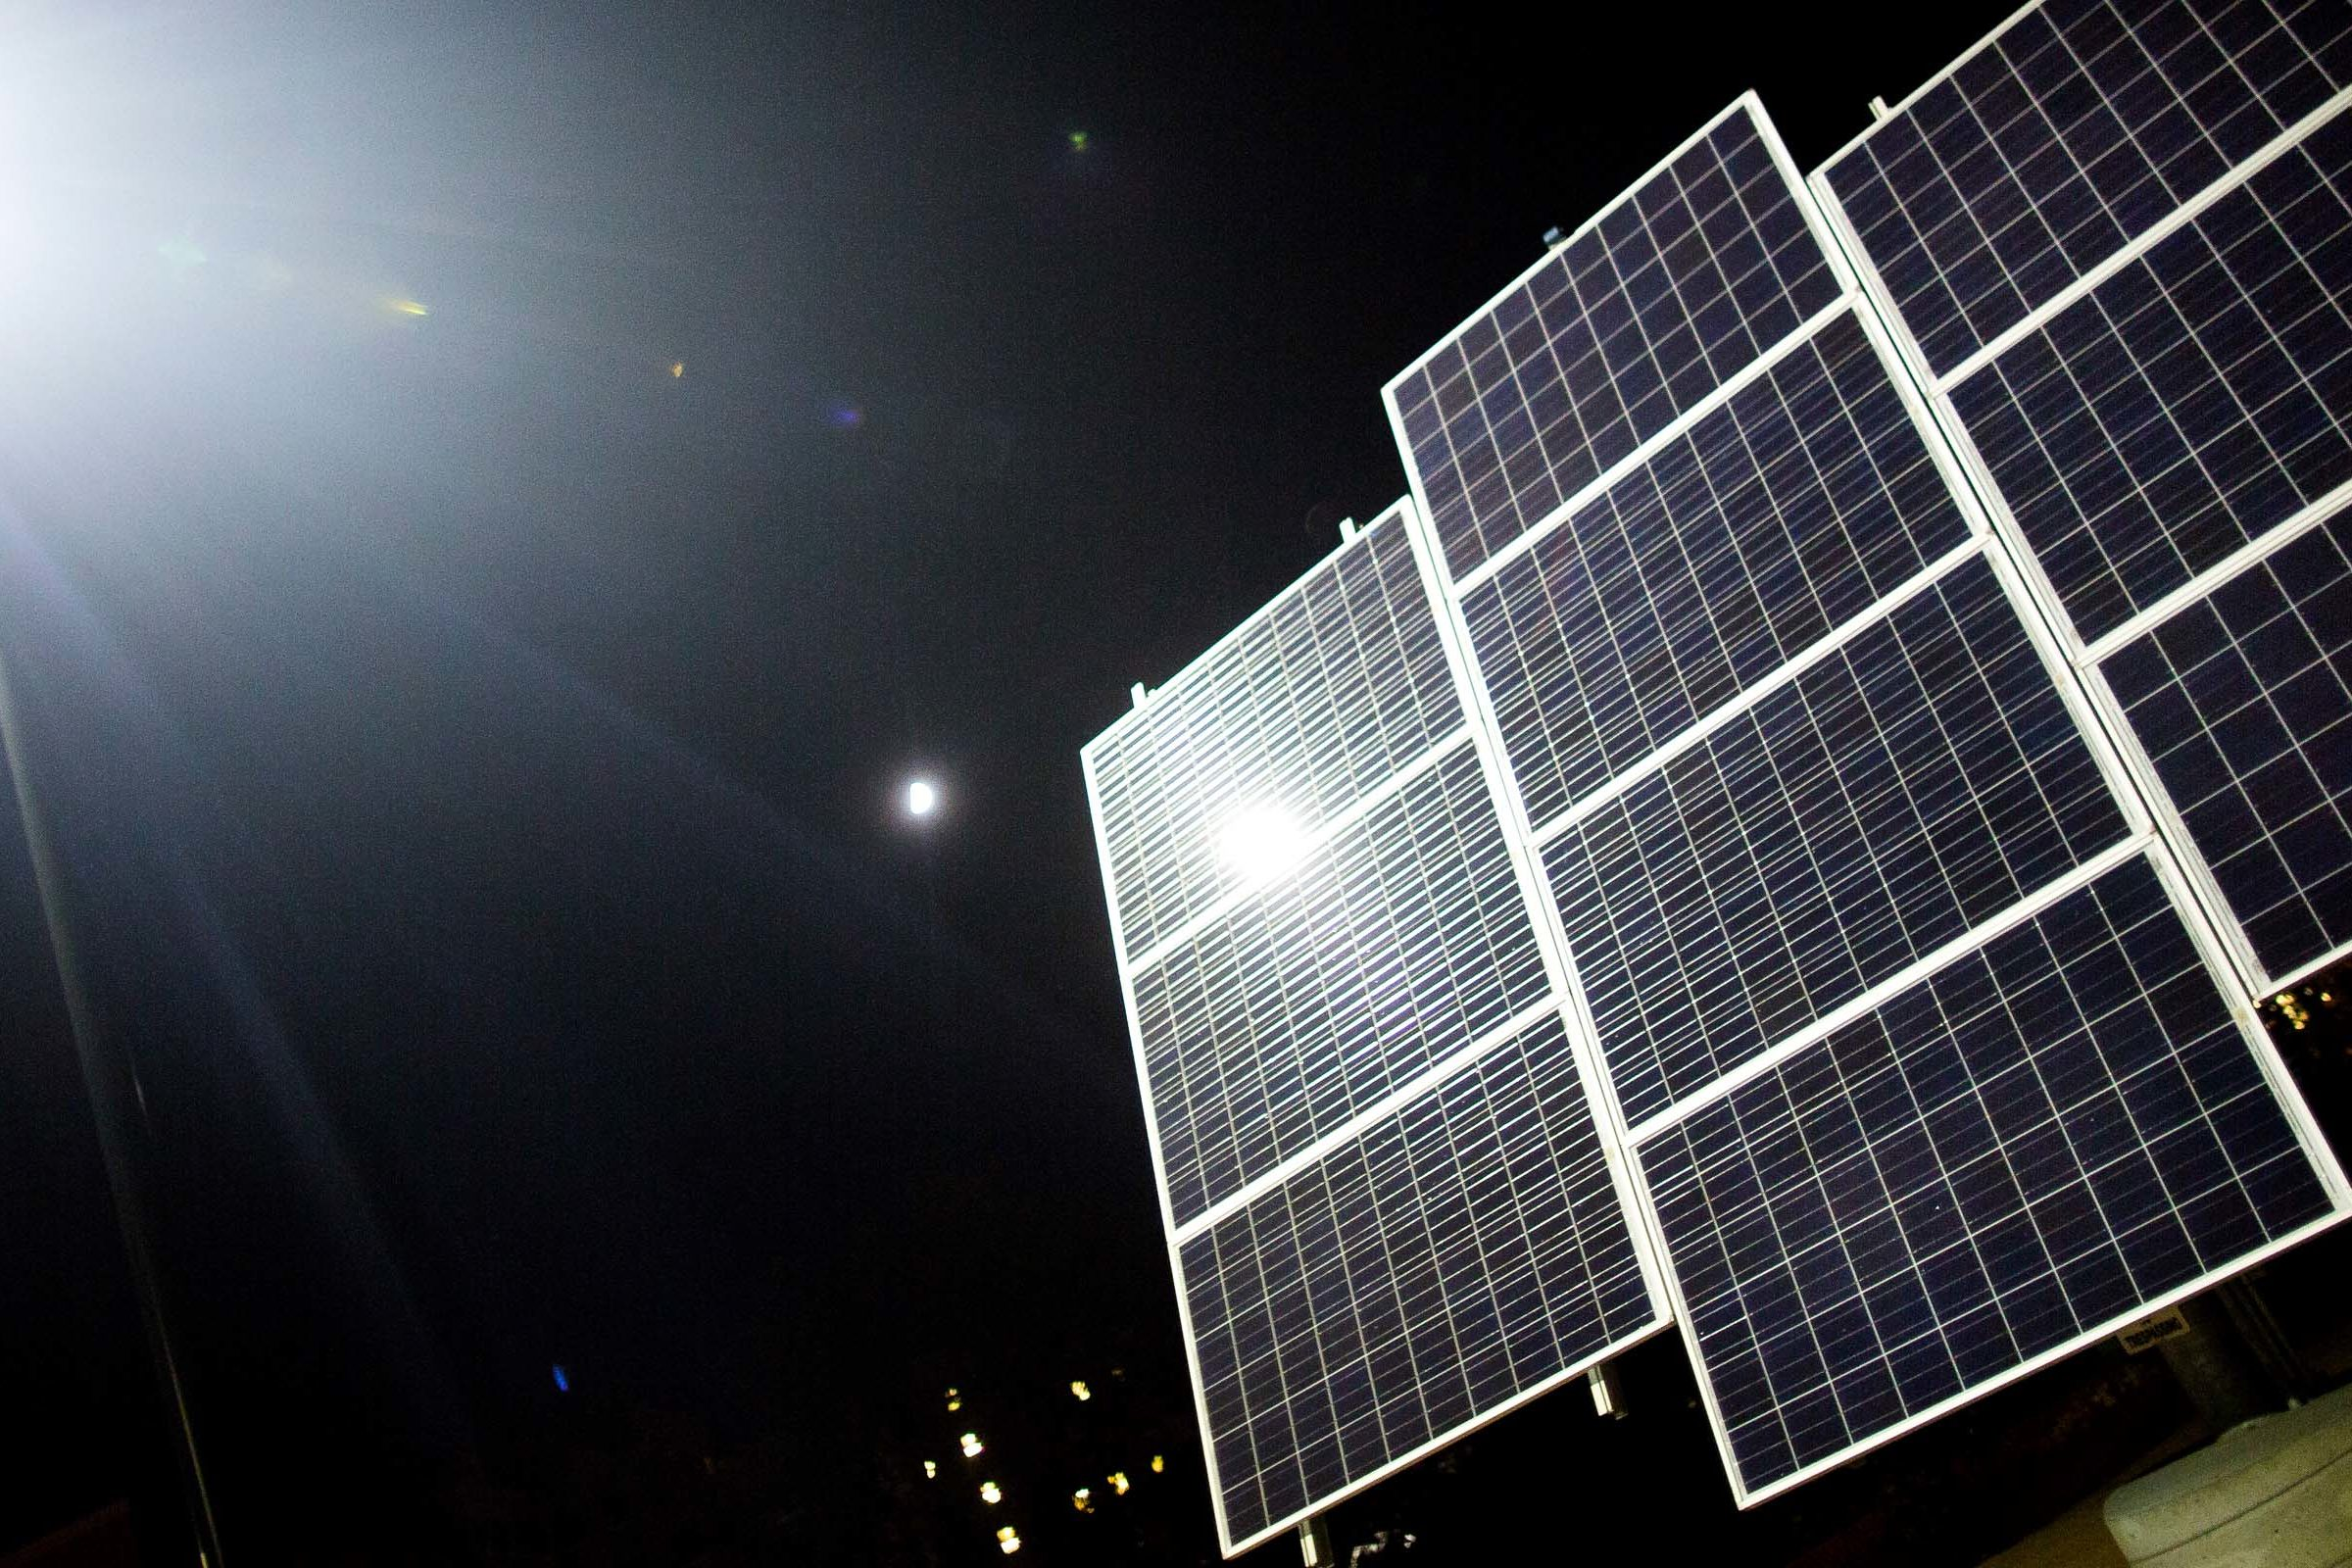 A solar panel illuminated at night.